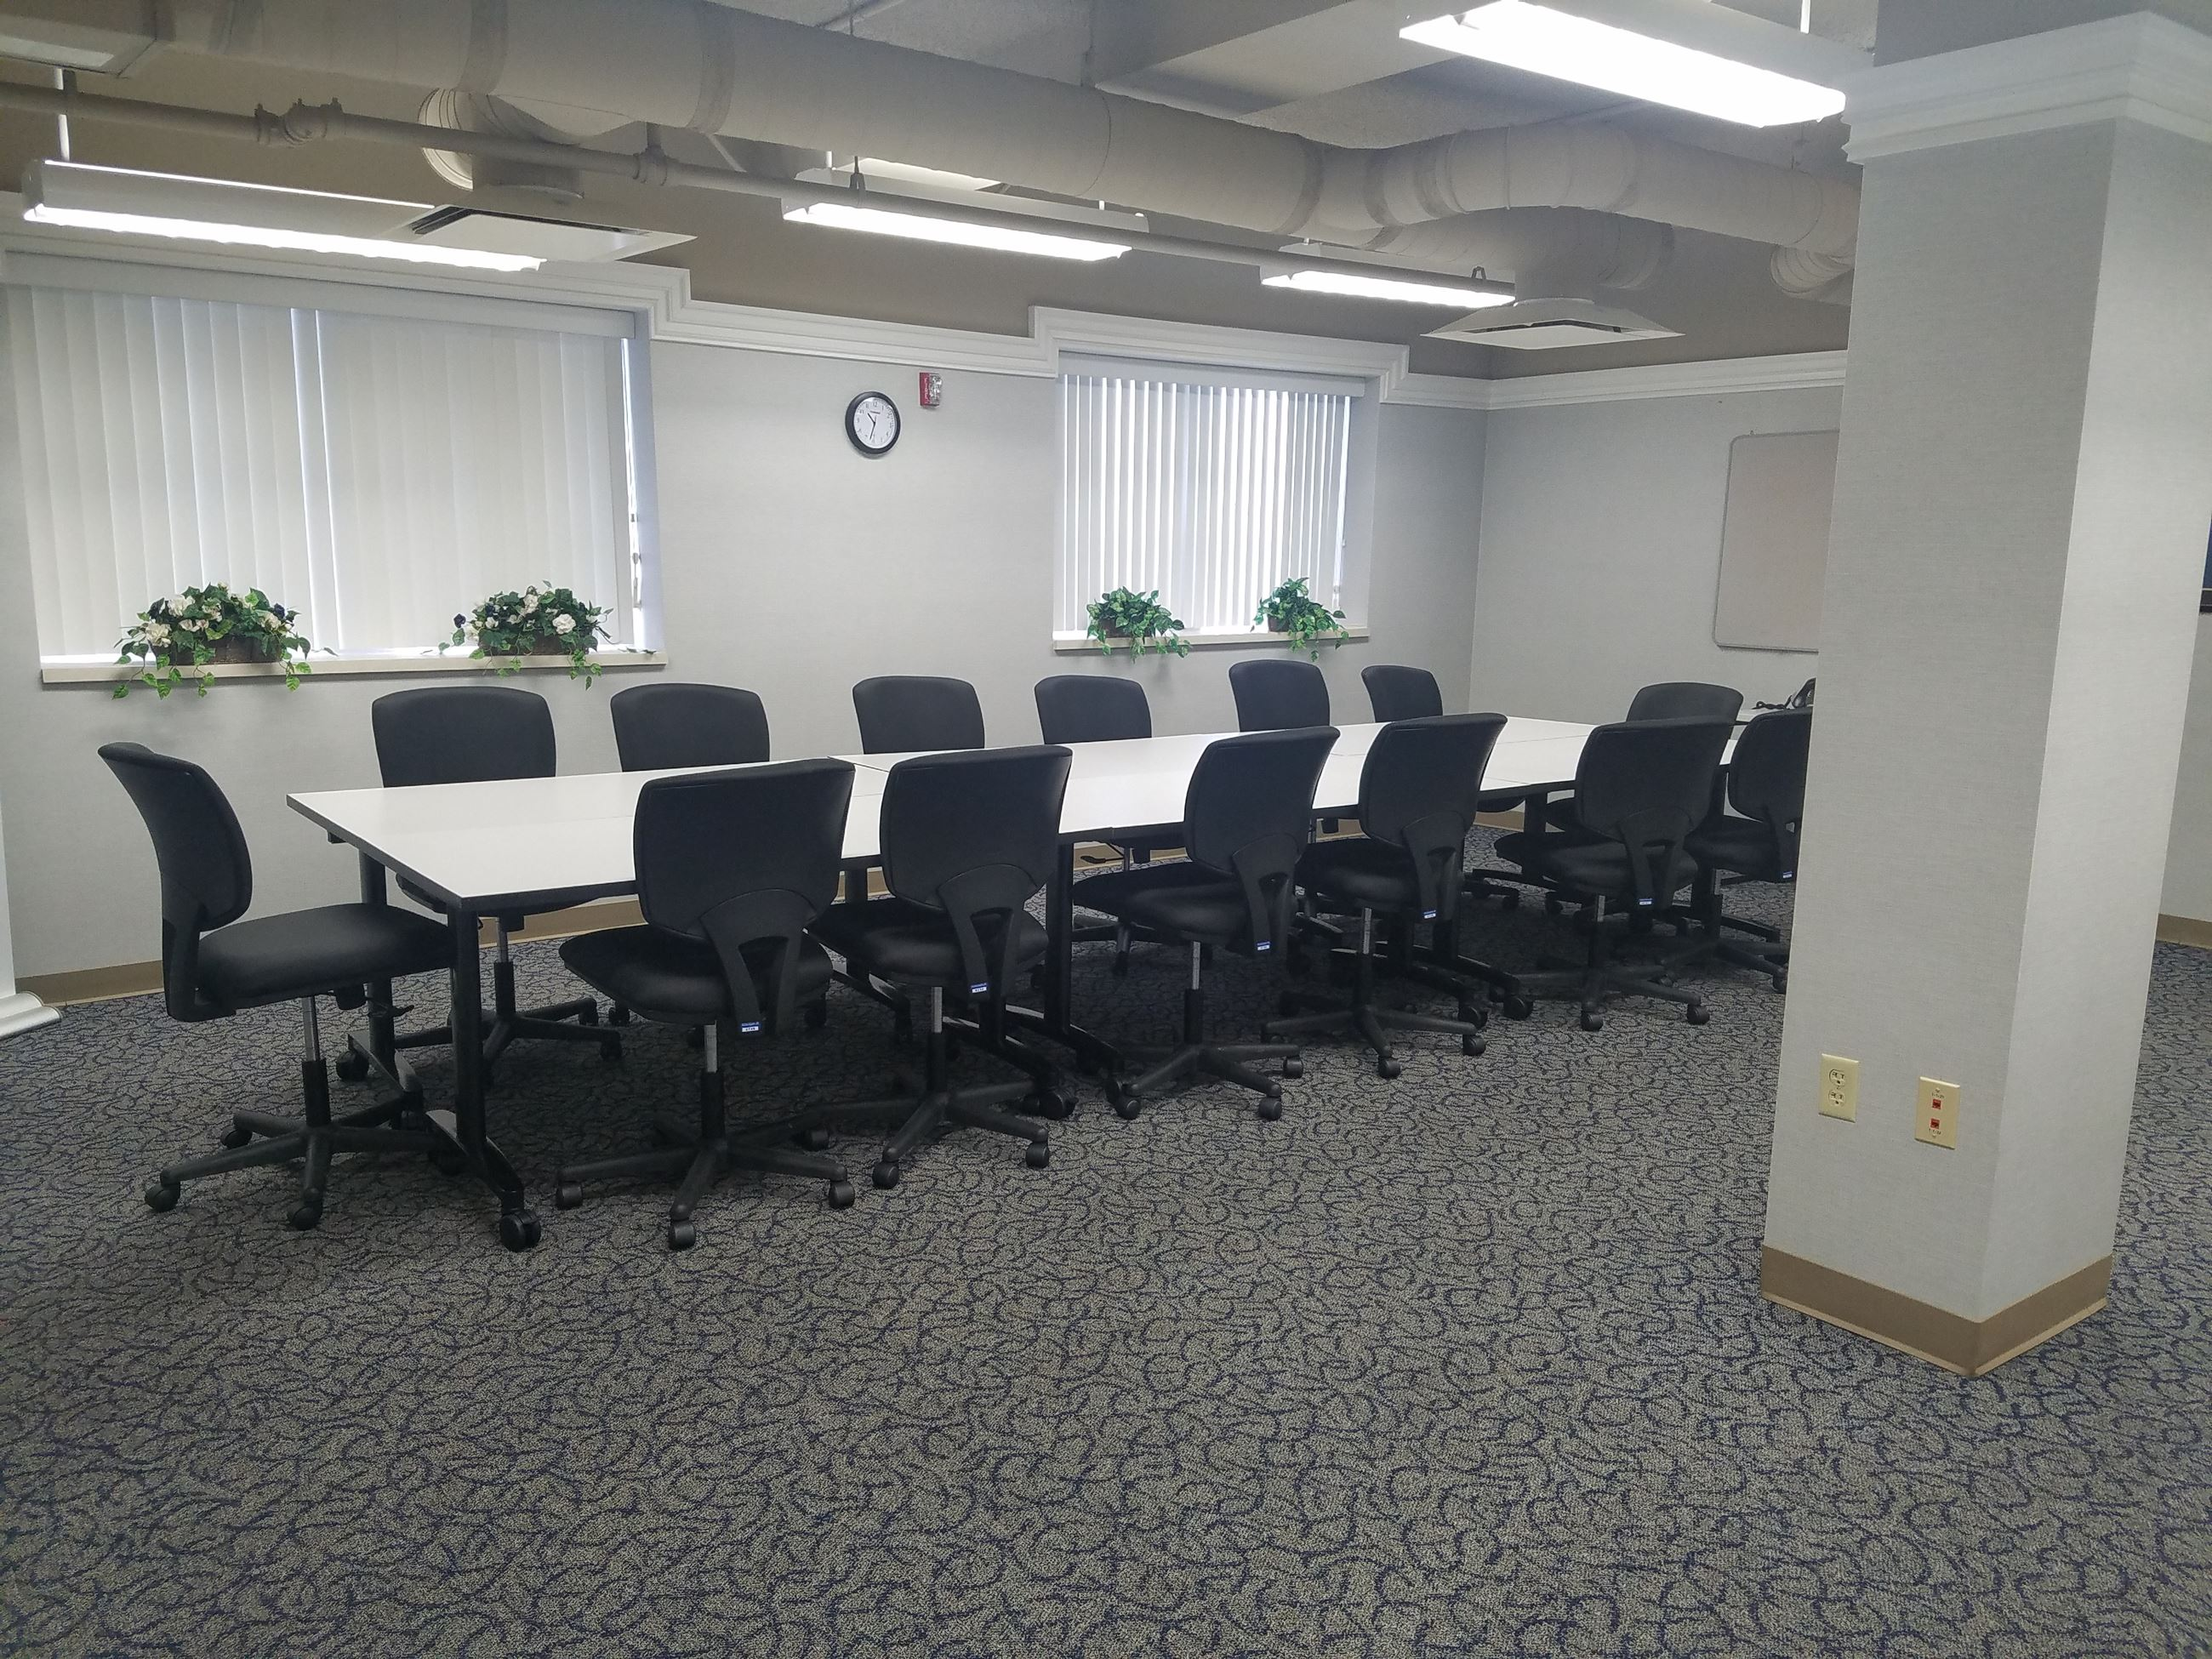 OMJ Conference Room 1-24-2019